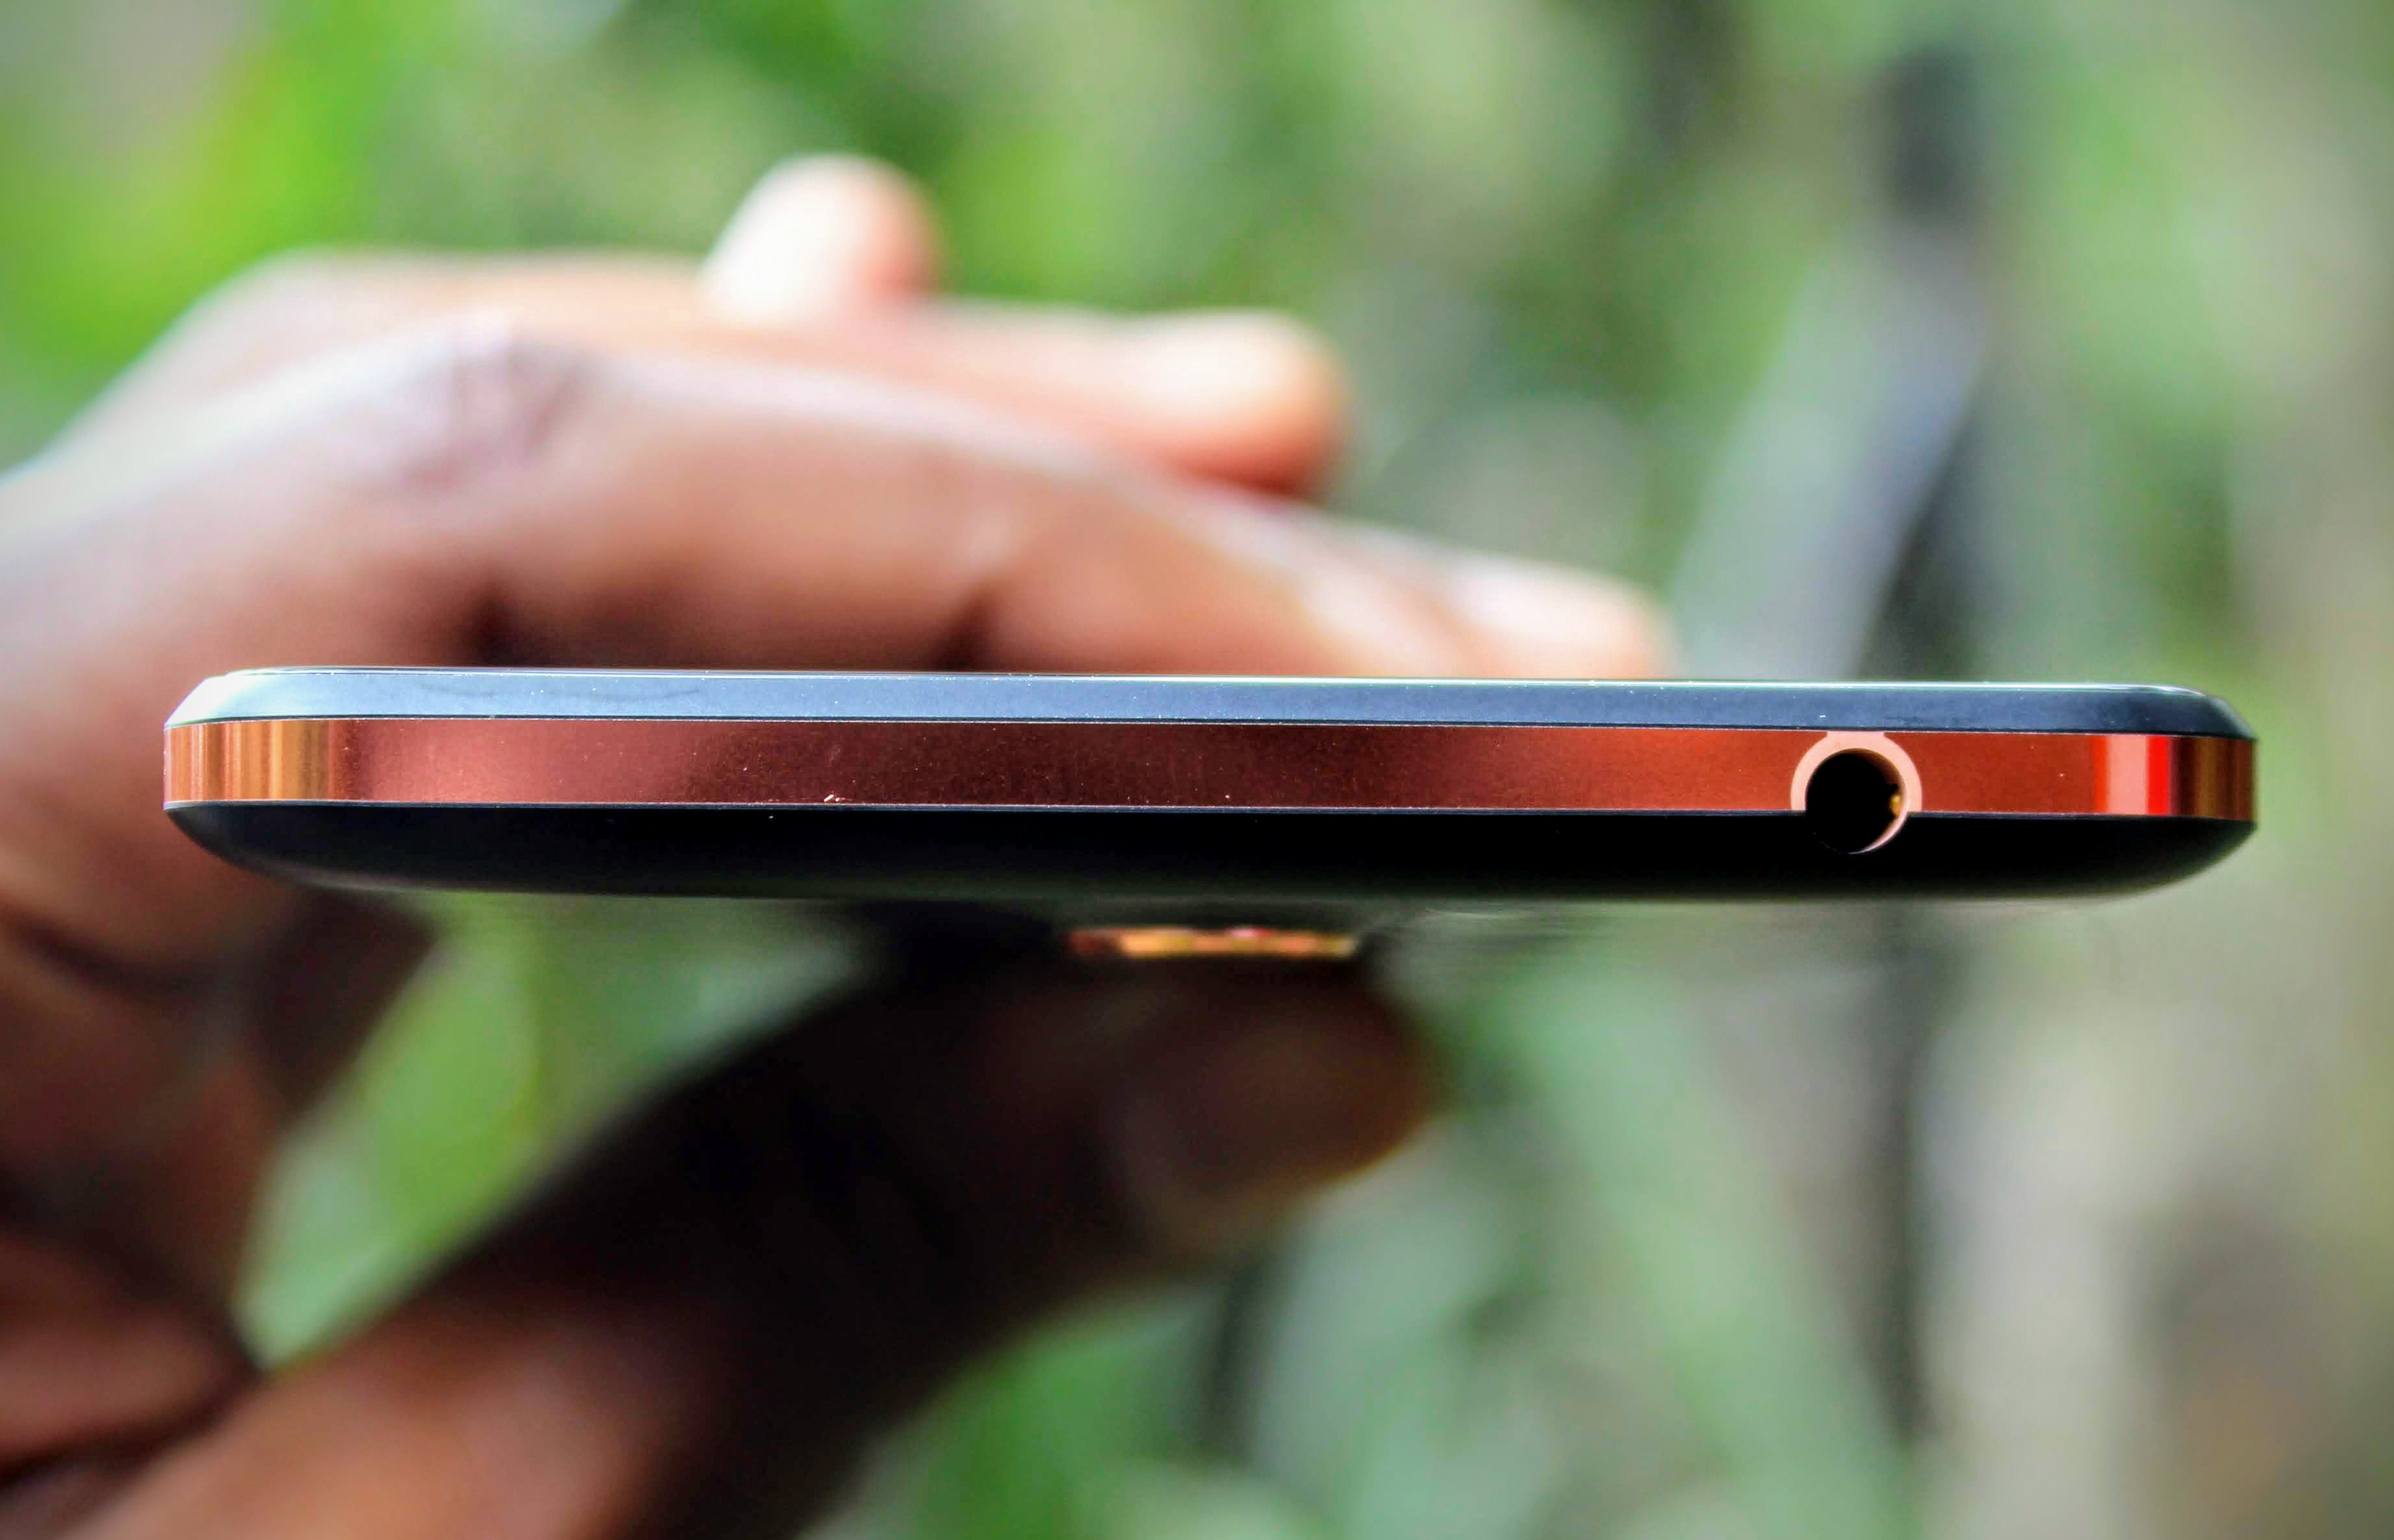 8 Reasons The NOKIA 7 Plus Is One Of The Best Mid-Range Smartphones